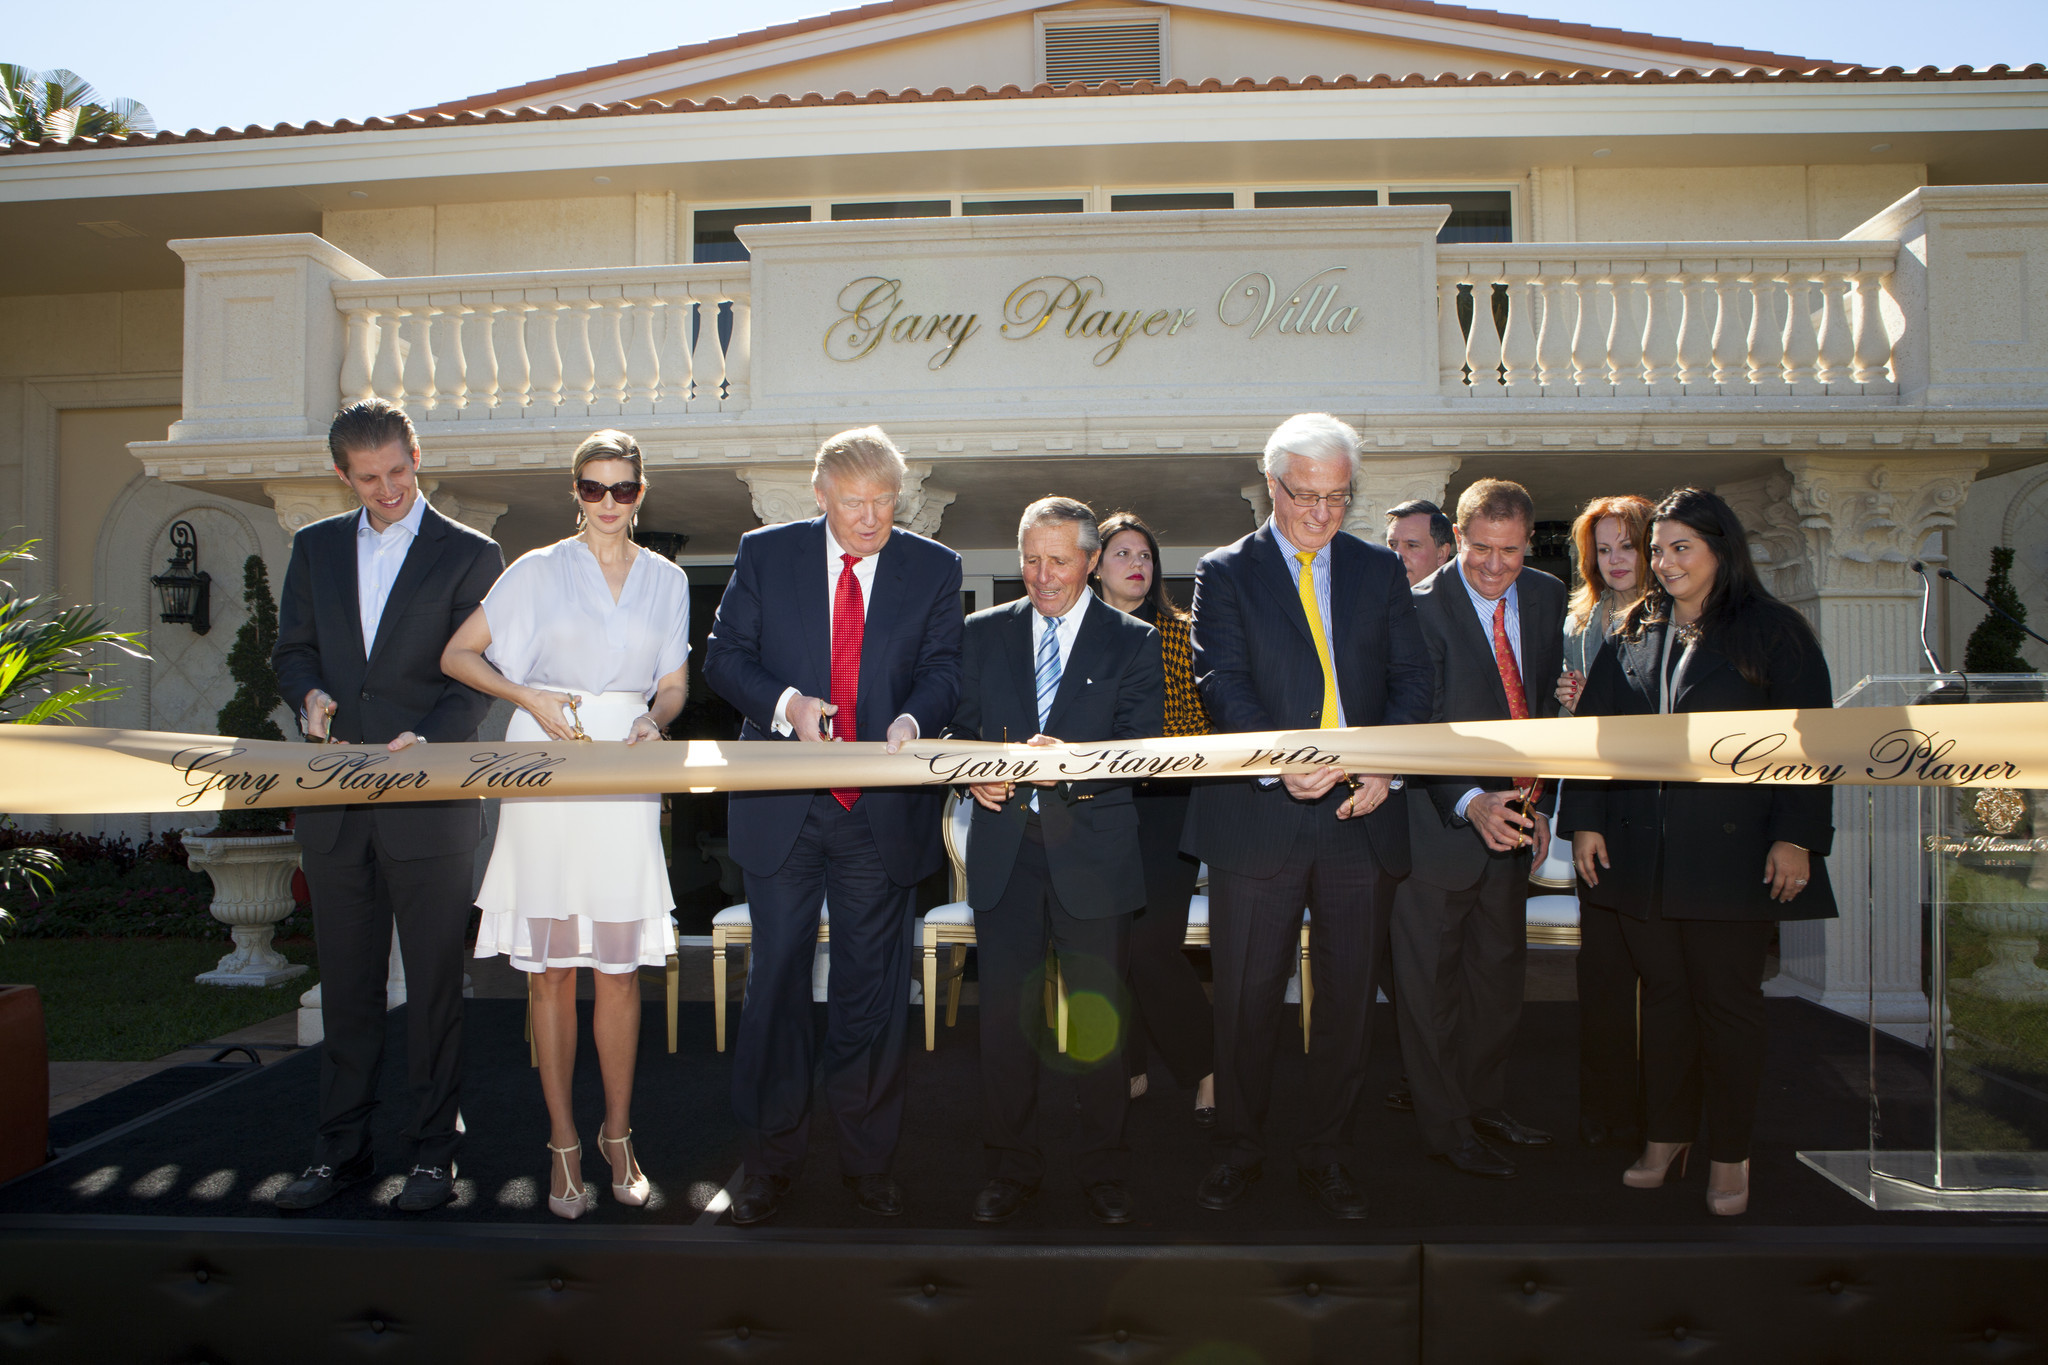 Celeb-spotting around South Florida - Donald, Ivanka and Eric Trump Unveil New Villa at Trump National Doral Miami